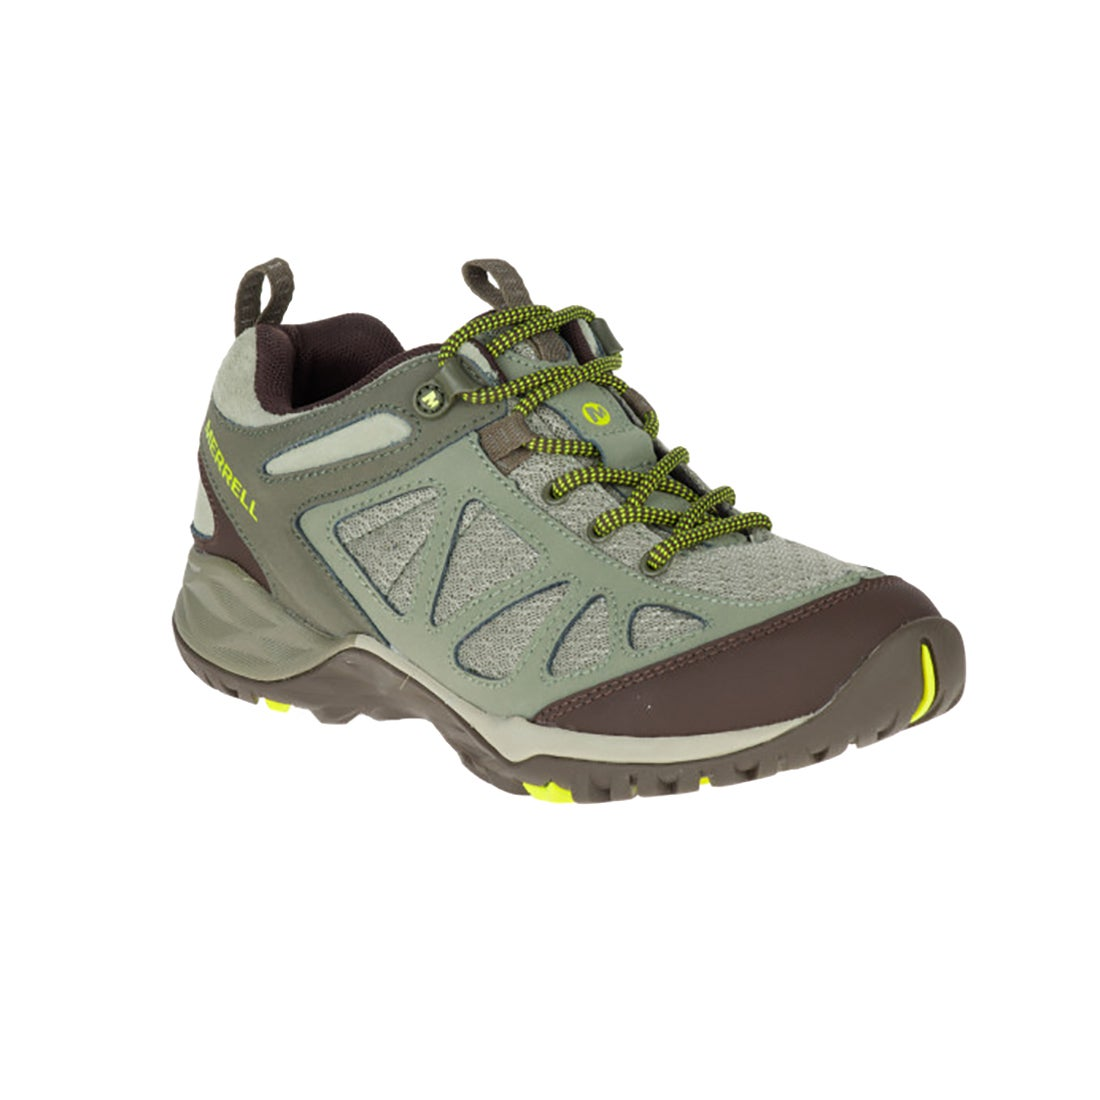 fccb2cf67a694 Merrell Siren Sport Q2 Ladies Hiking Shoes available from Blackleaf